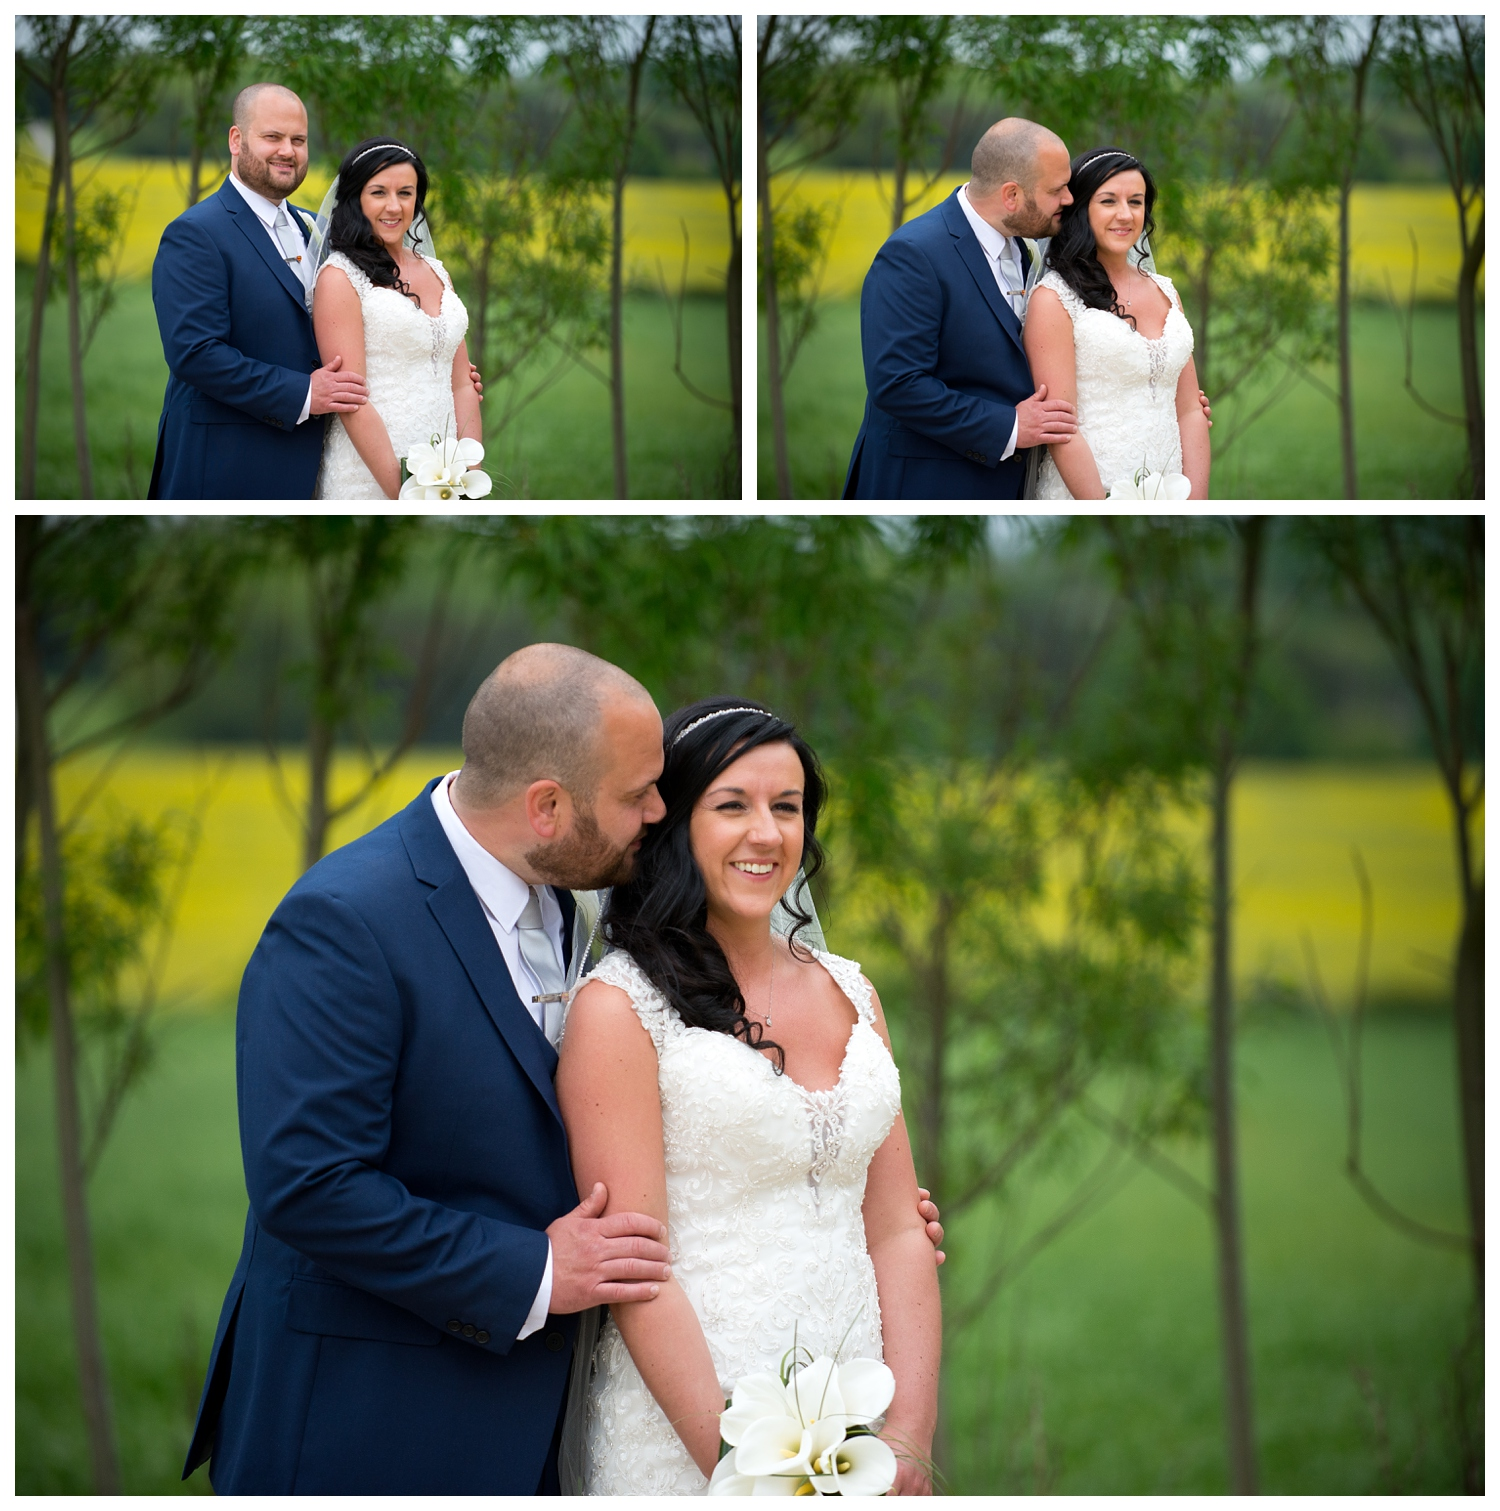 Swancar-Farm-Wedding-Photography_0054